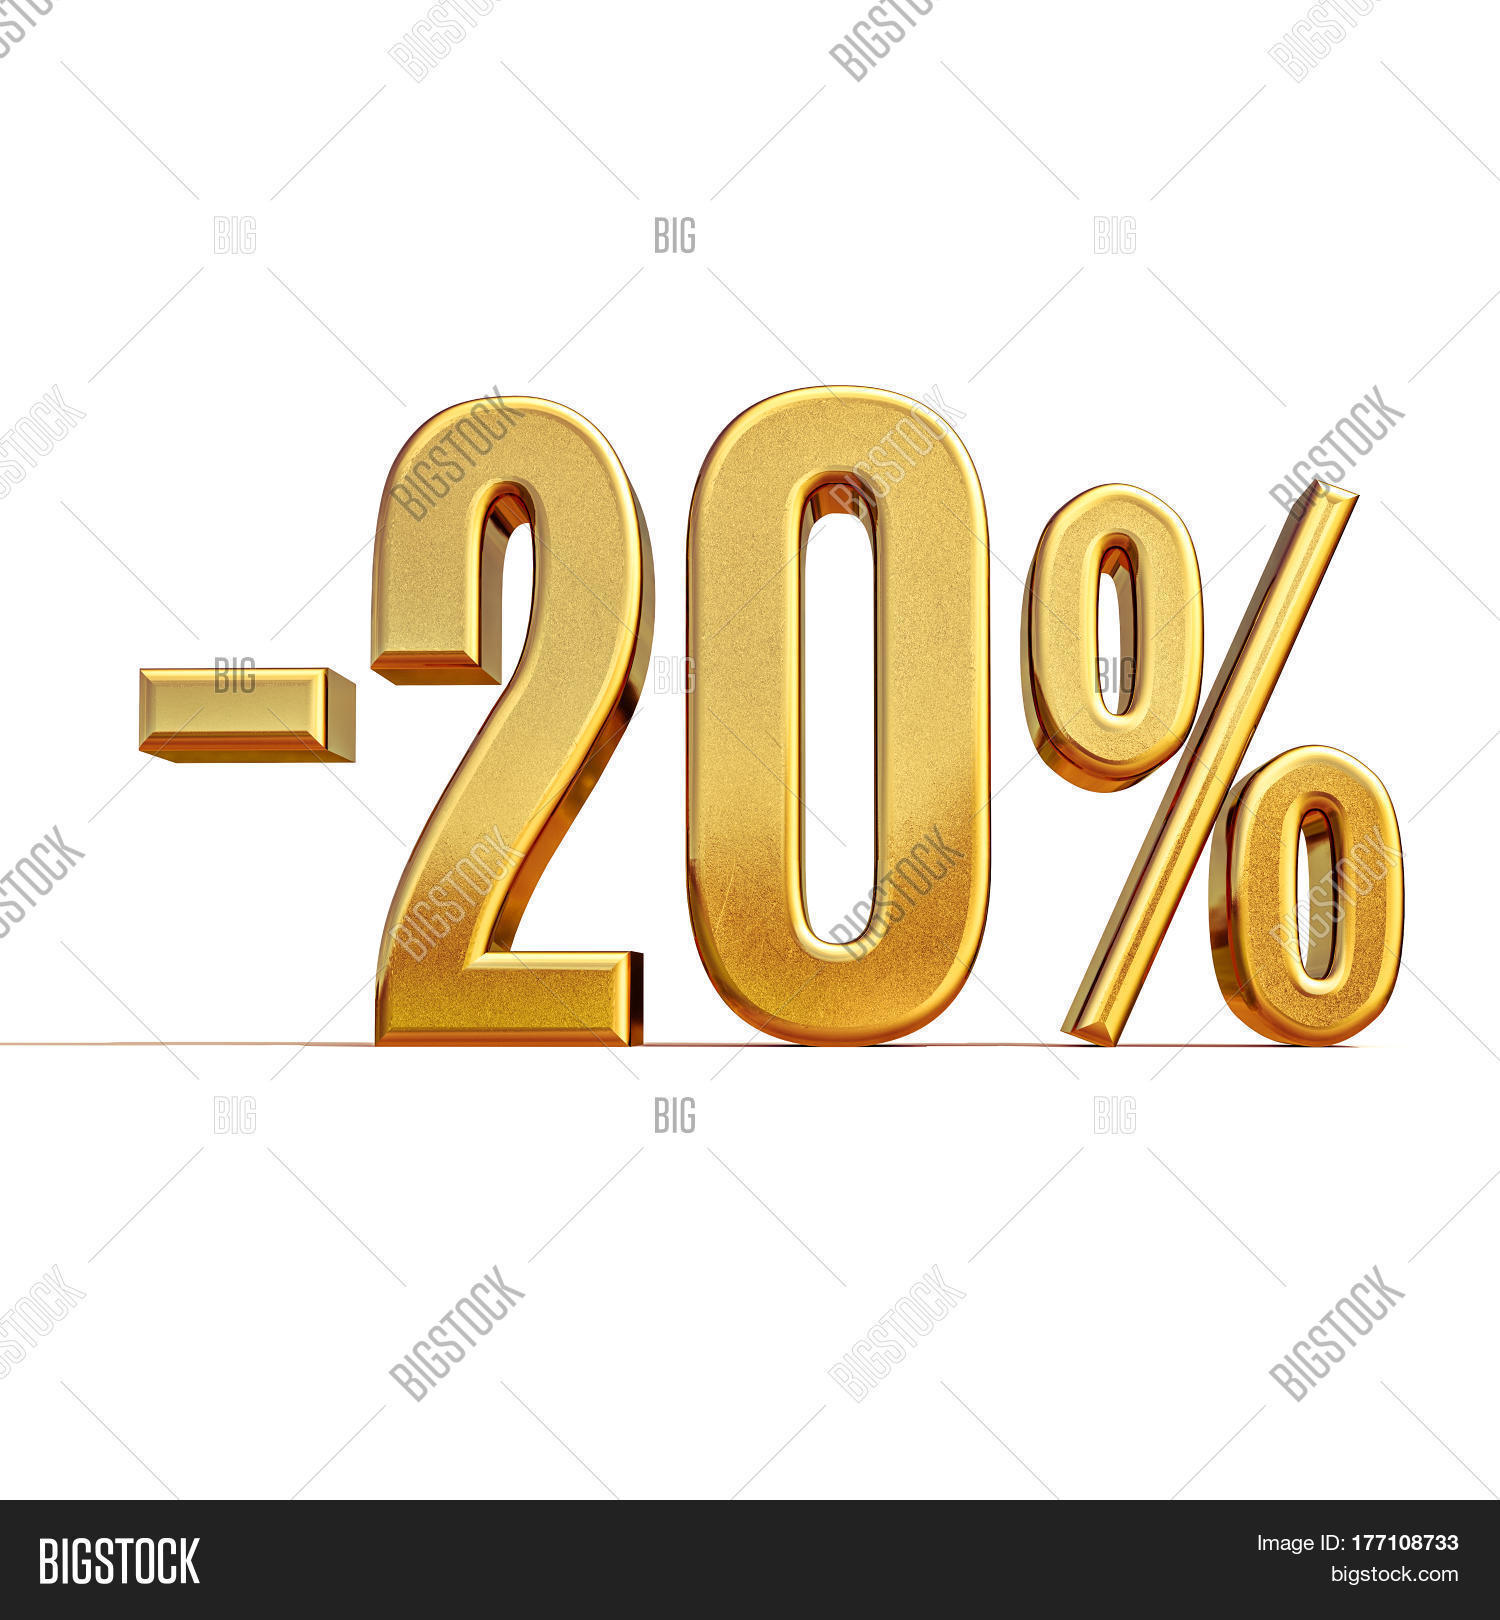 3d render gold 20 percent off image photo bigstock. Black Bedroom Furniture Sets. Home Design Ideas